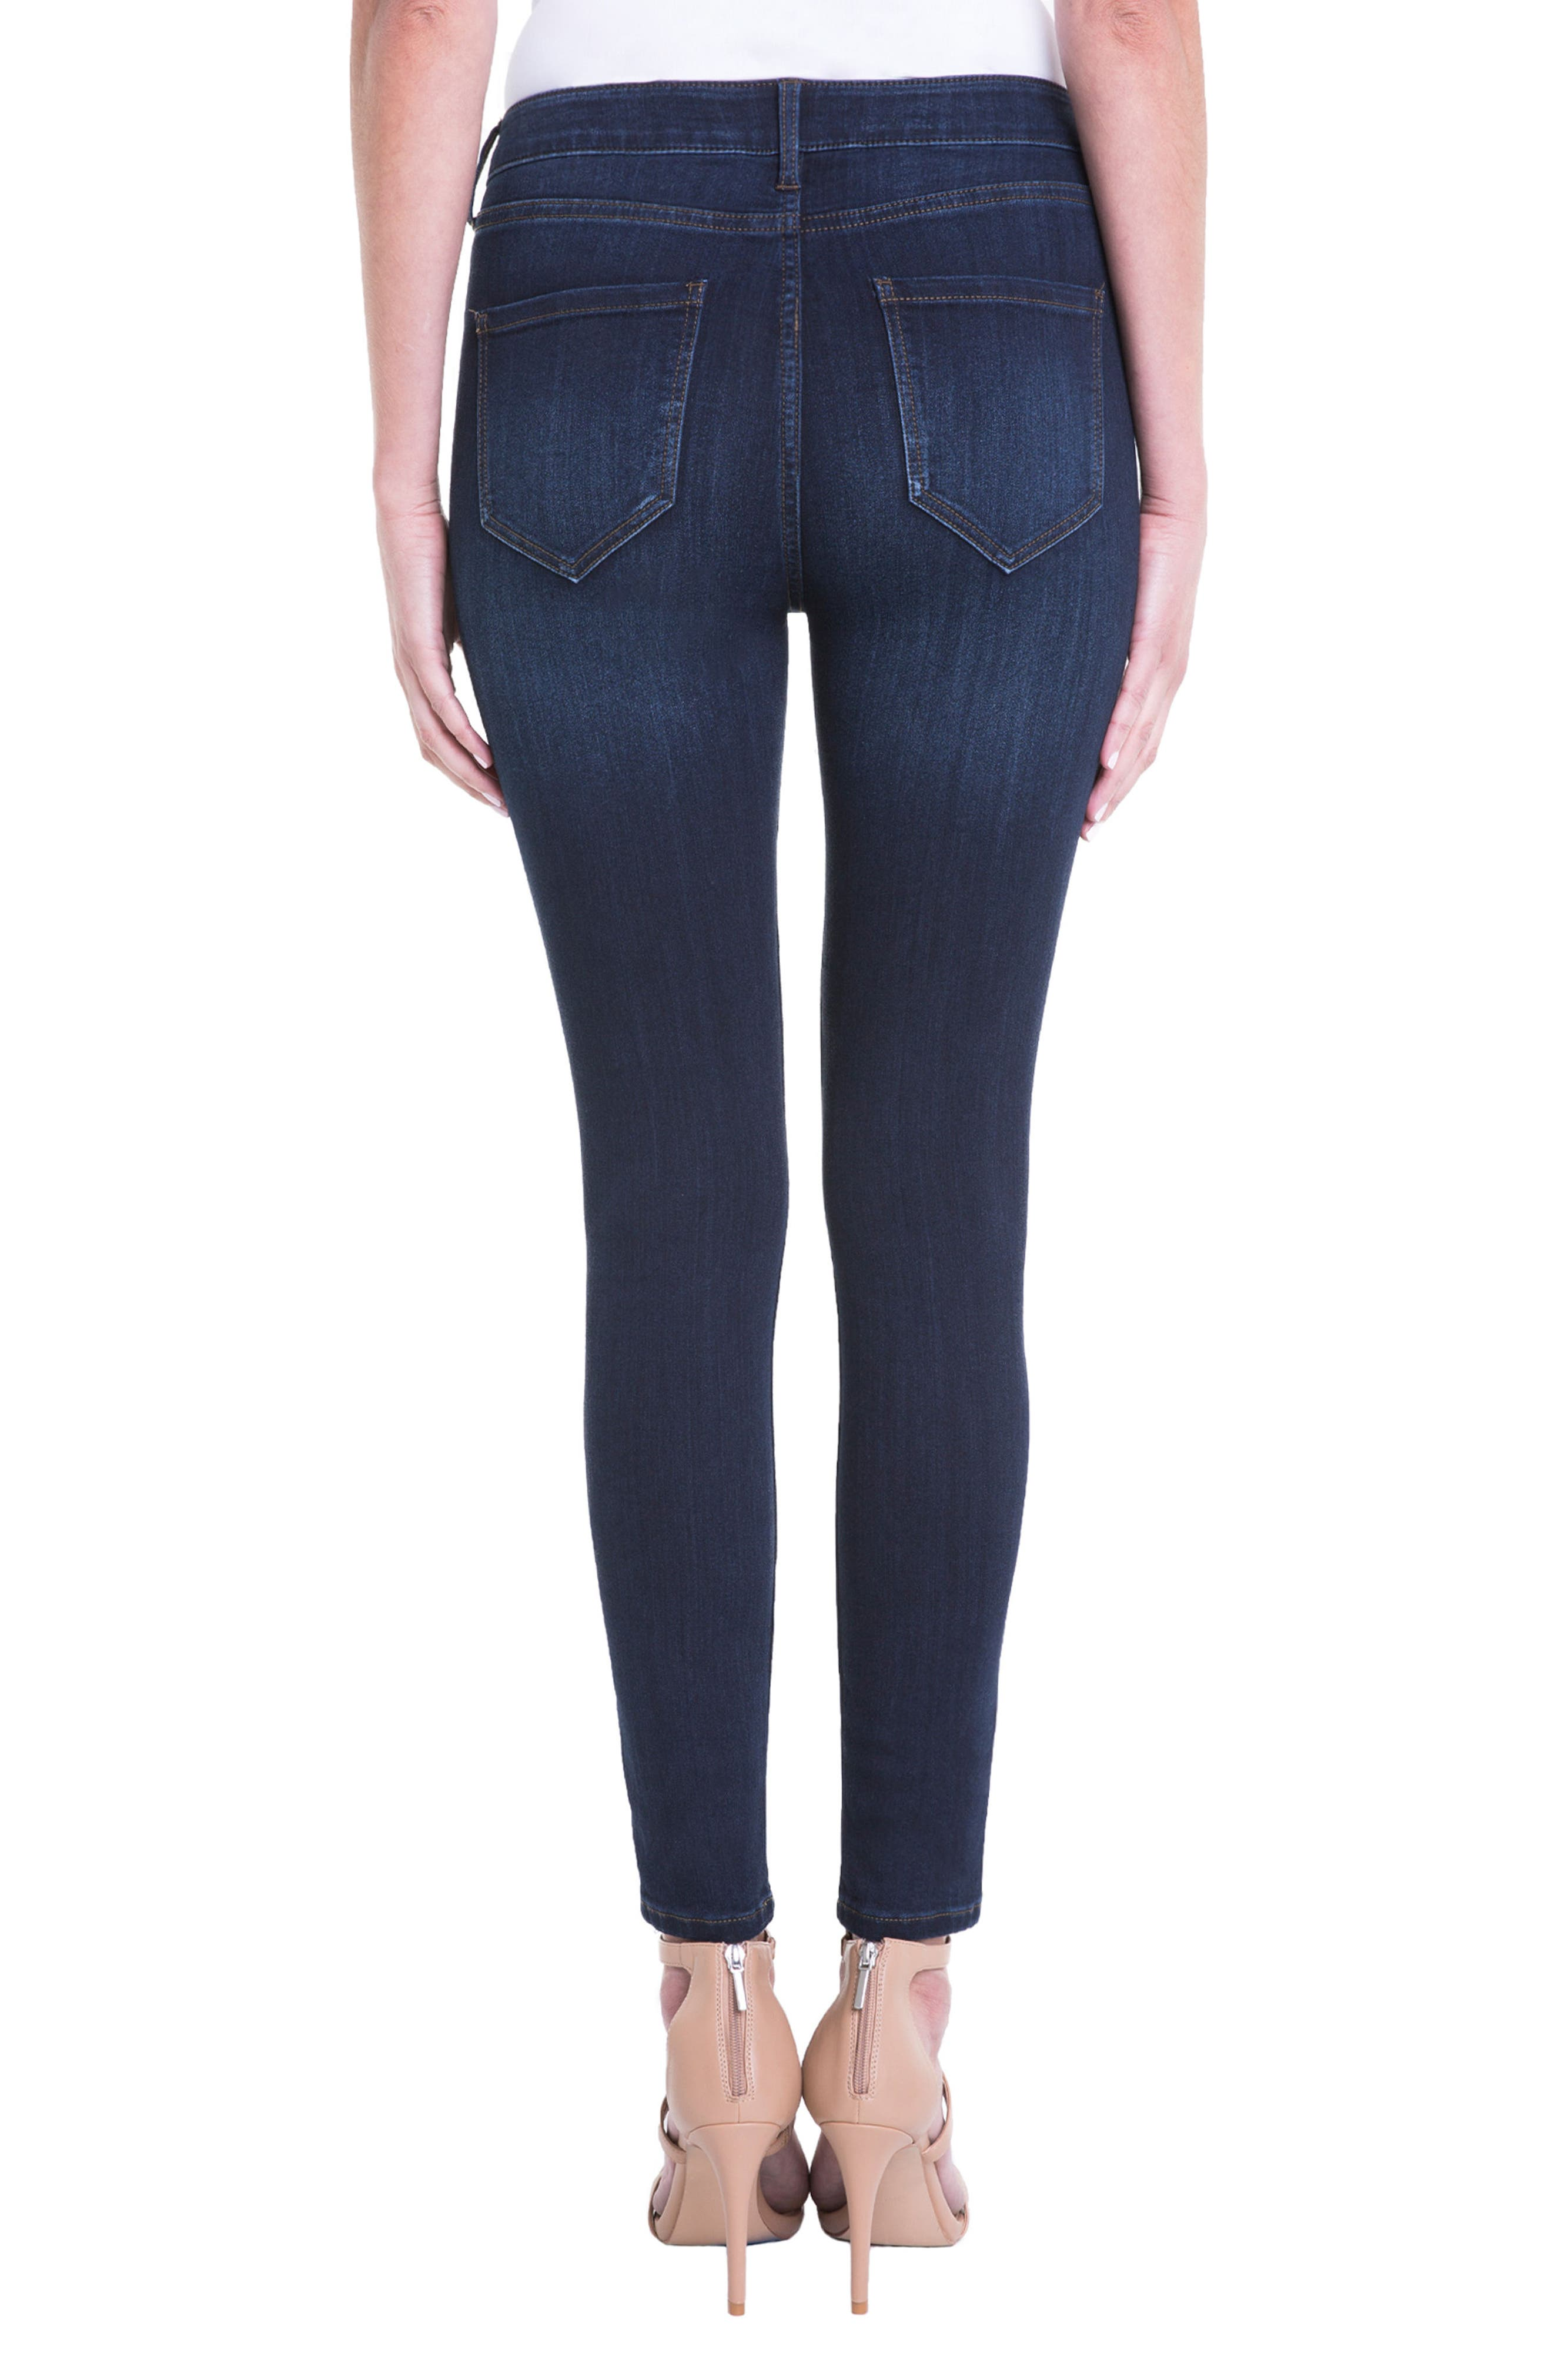 Jeans Company Bridget High Waist Skinny Jeans,                             Alternate thumbnail 7, color,